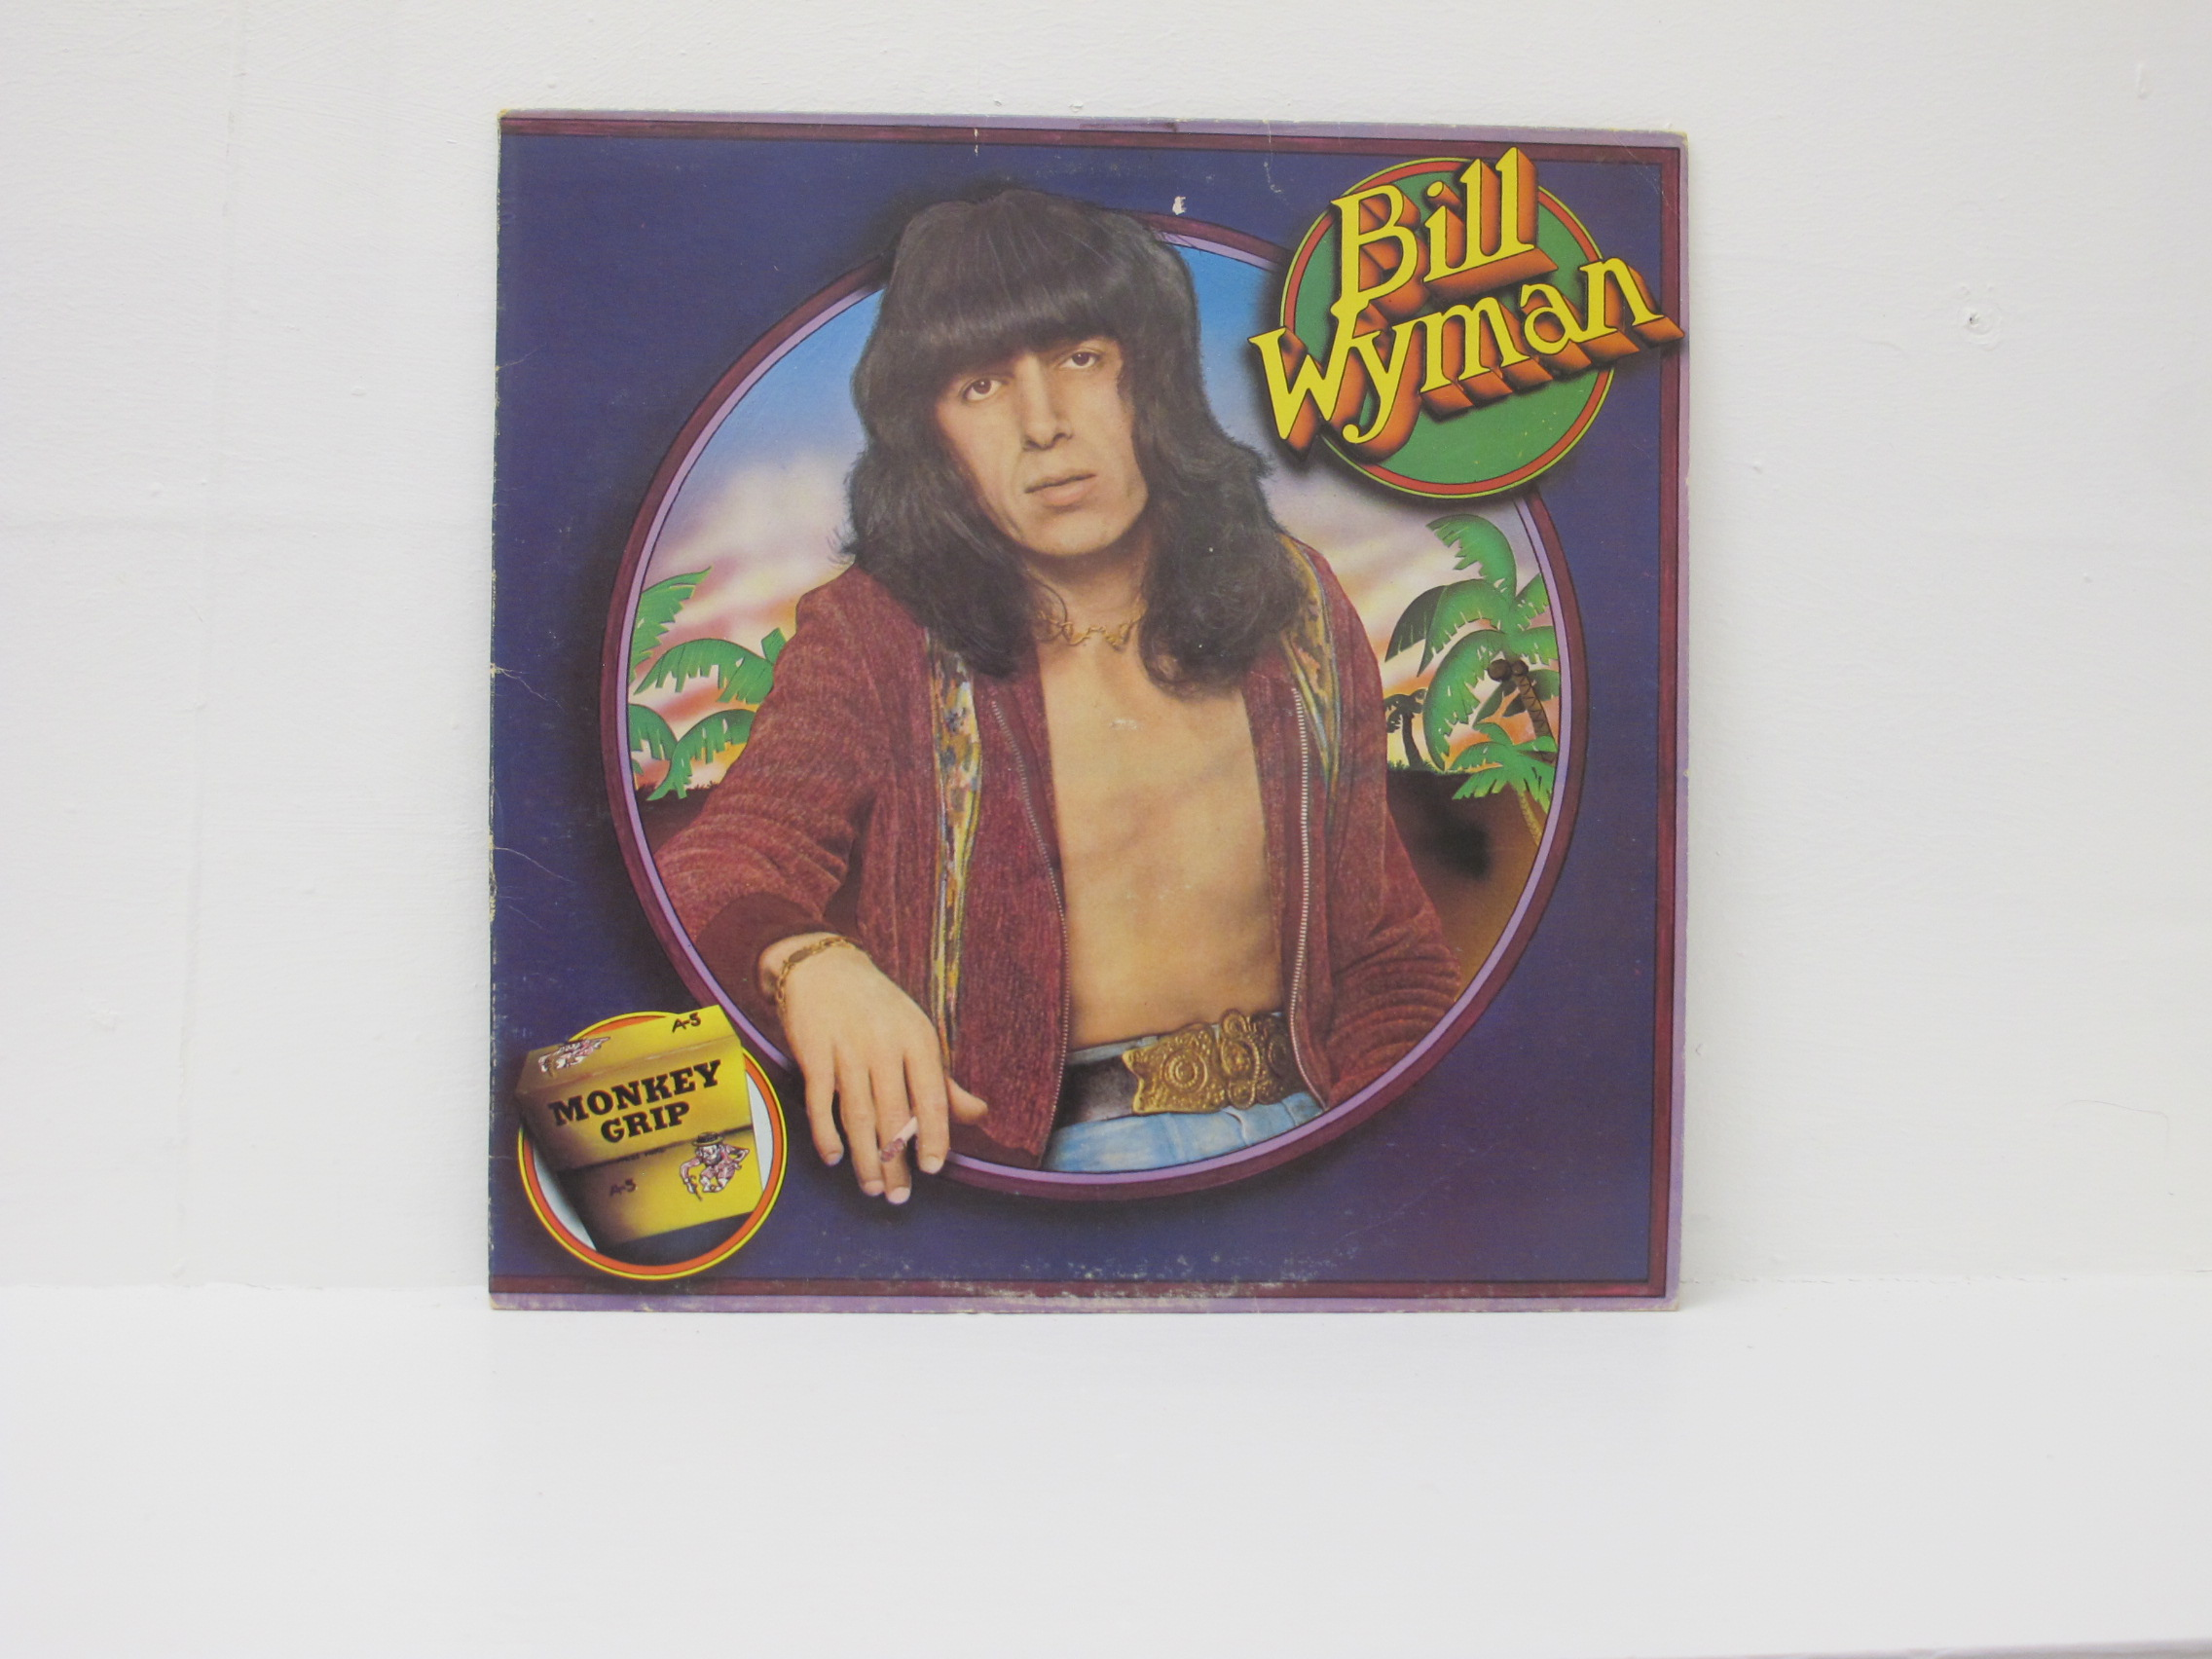 Bill Wyman - Monkey Grip